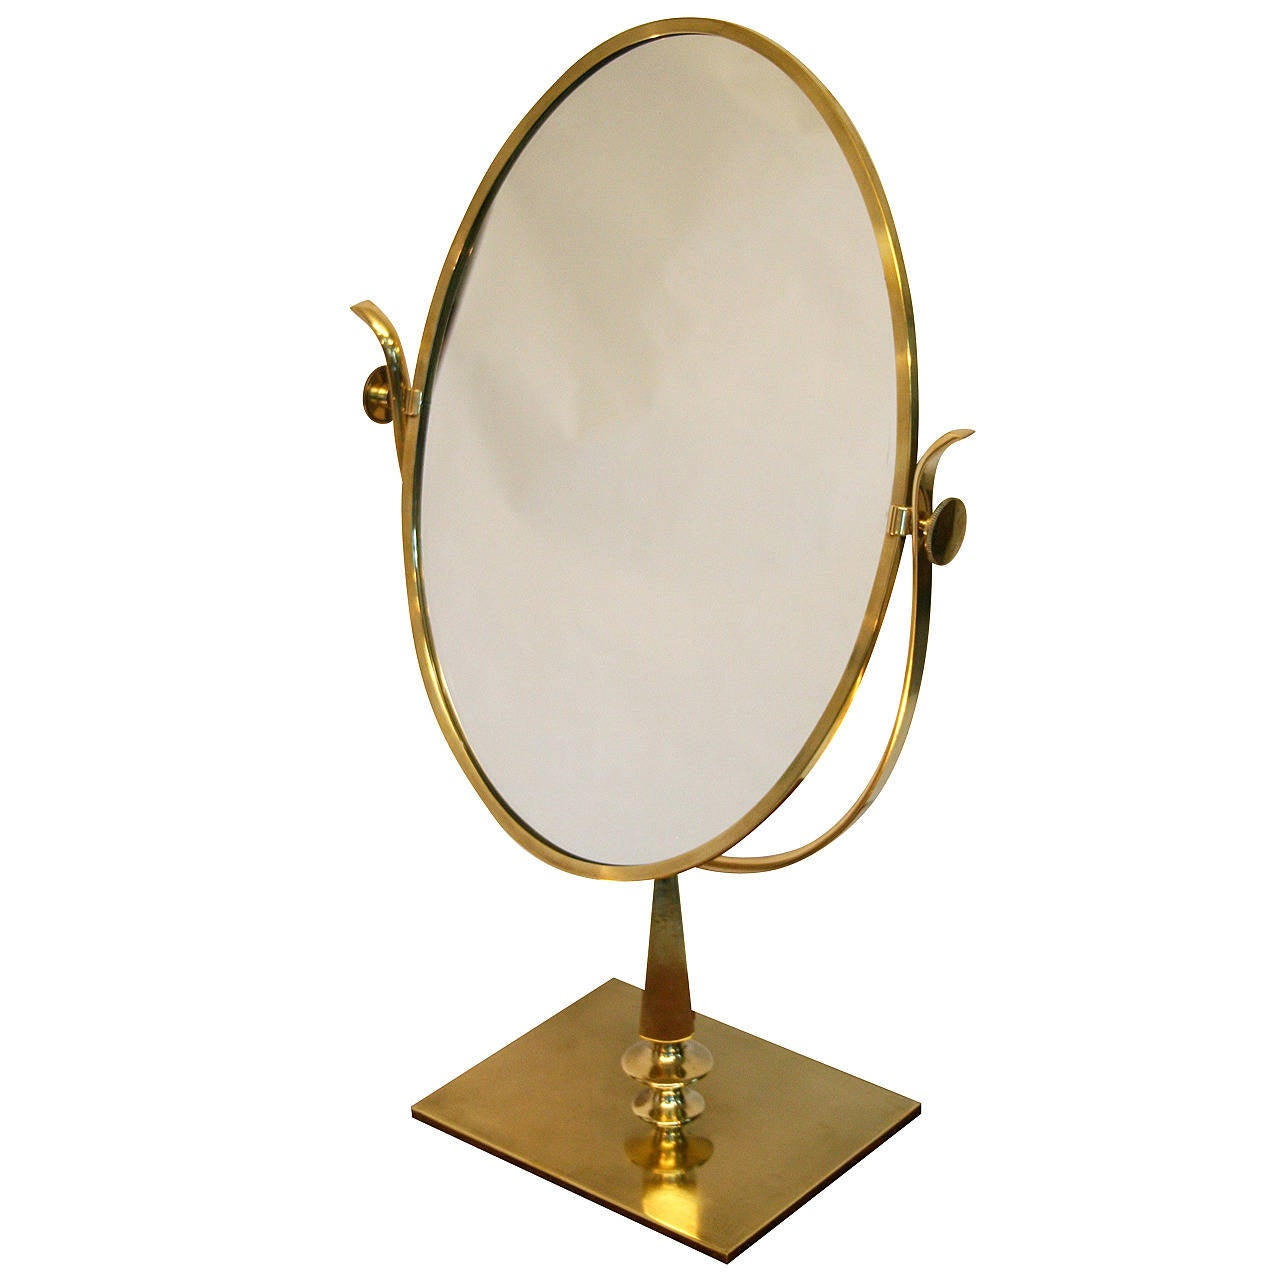 7In Two Sided Mirror Vanity Mirrors Vanity Mirrors Back Side5Magnification